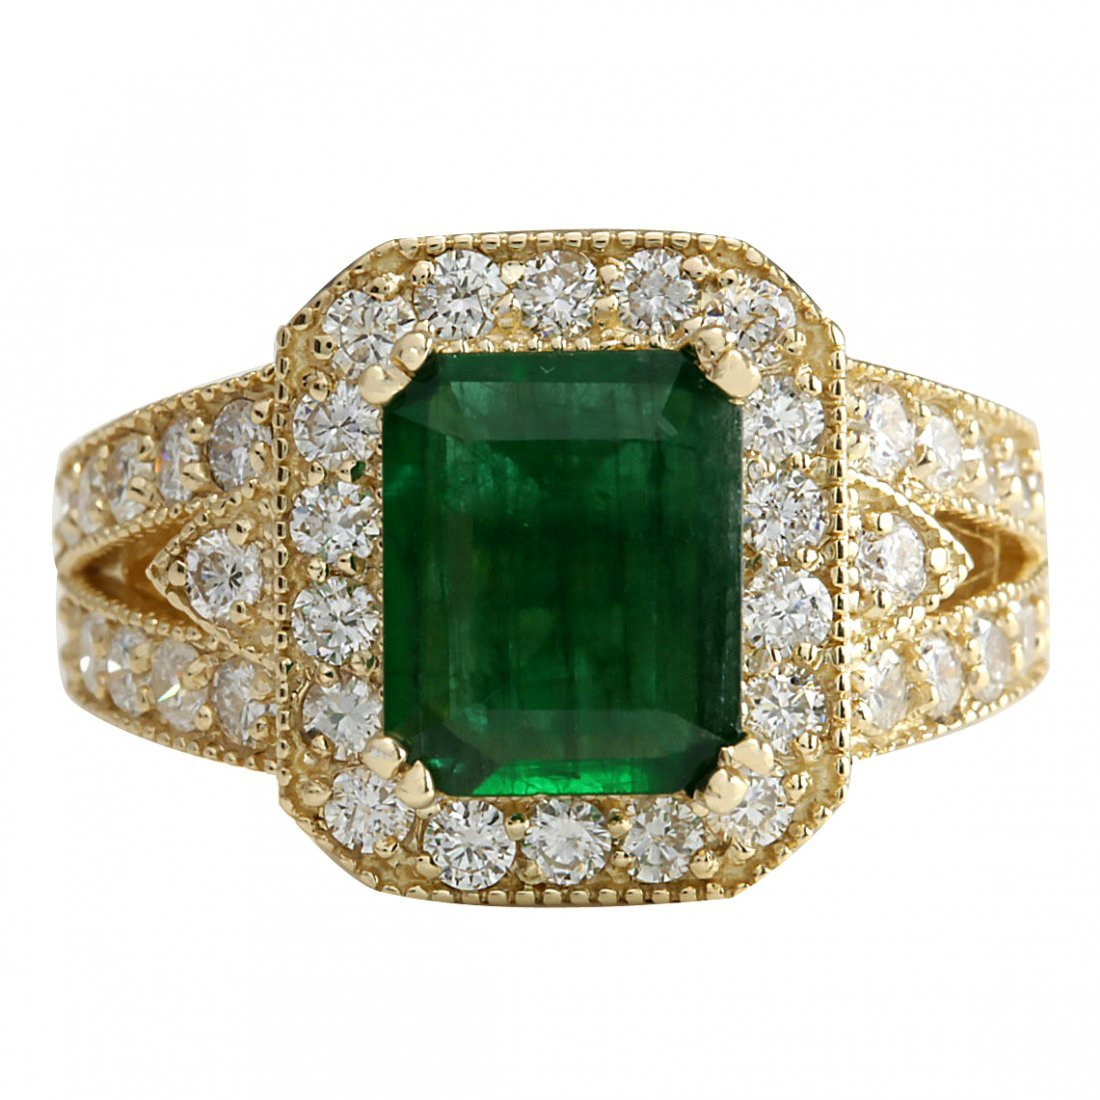 3.29CTW Natural Emerald And Diamond Ring 14K Solid